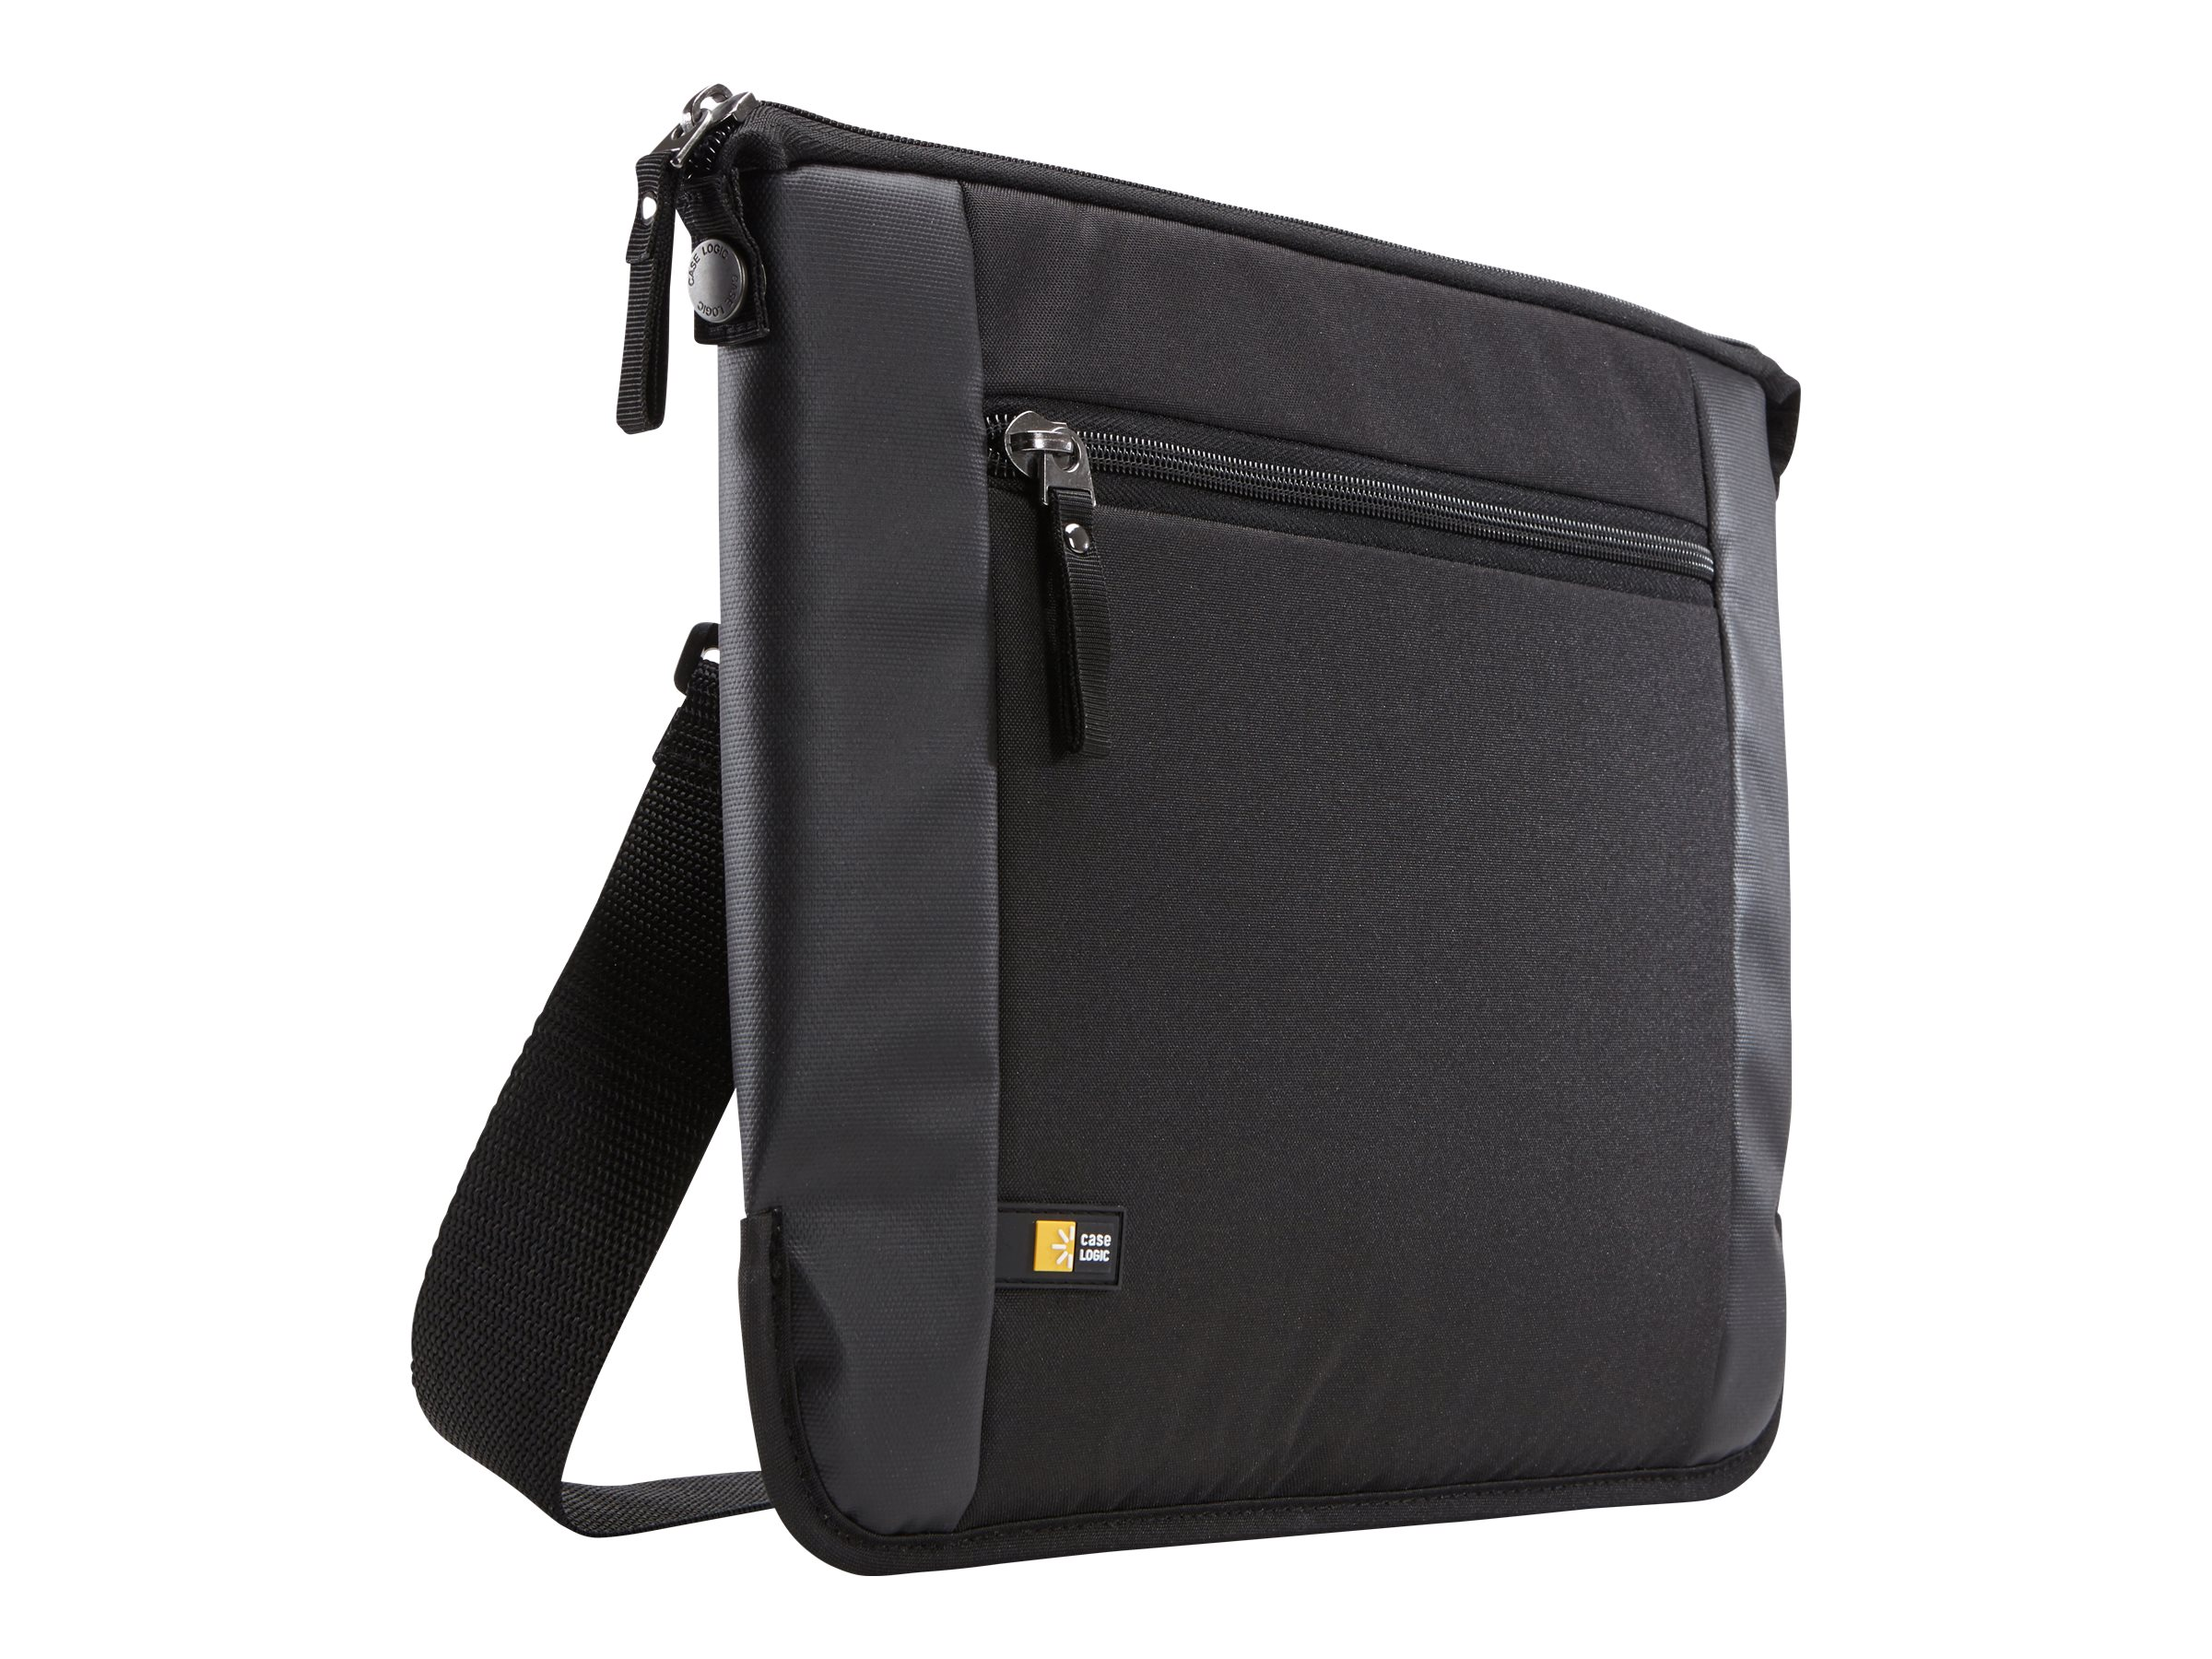 Case Logic Intrata 11.6 Laptop Bag for Chromebook, Black